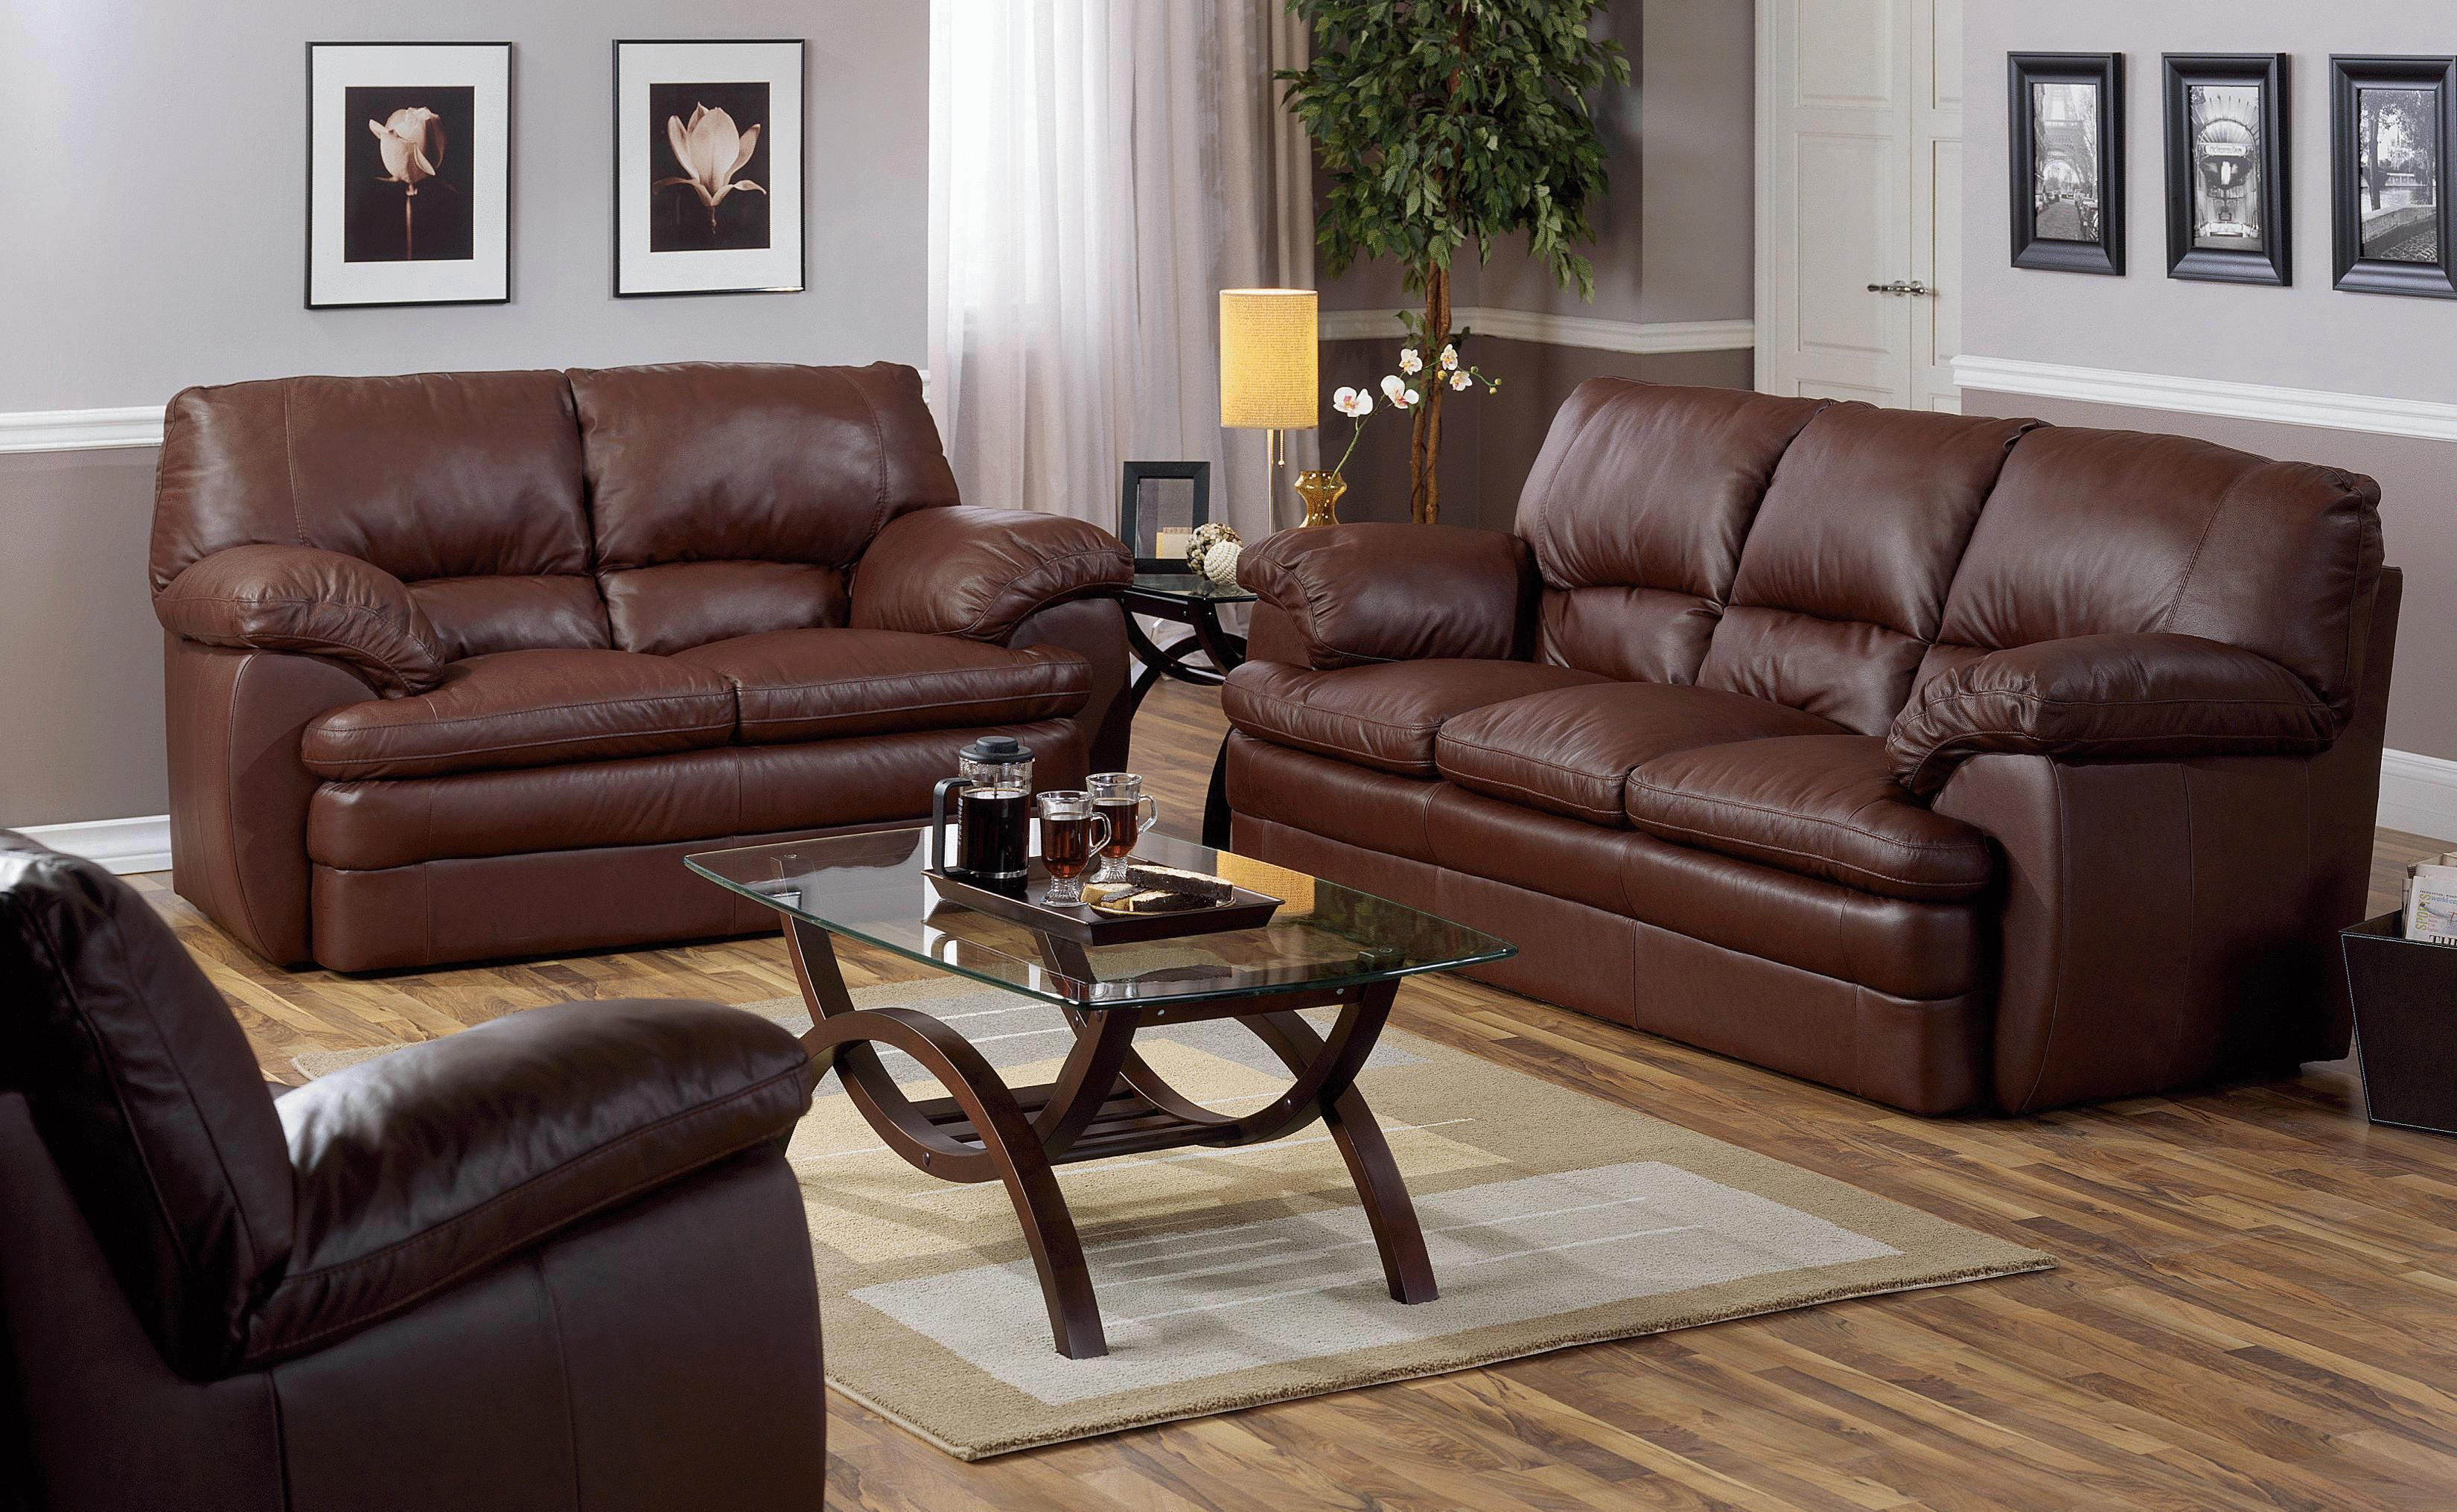 Marcella Pillow Top Sofa By Palliser Leather Comfortable Leather Sofa And Loveseat Leather Living Room Set Furniture